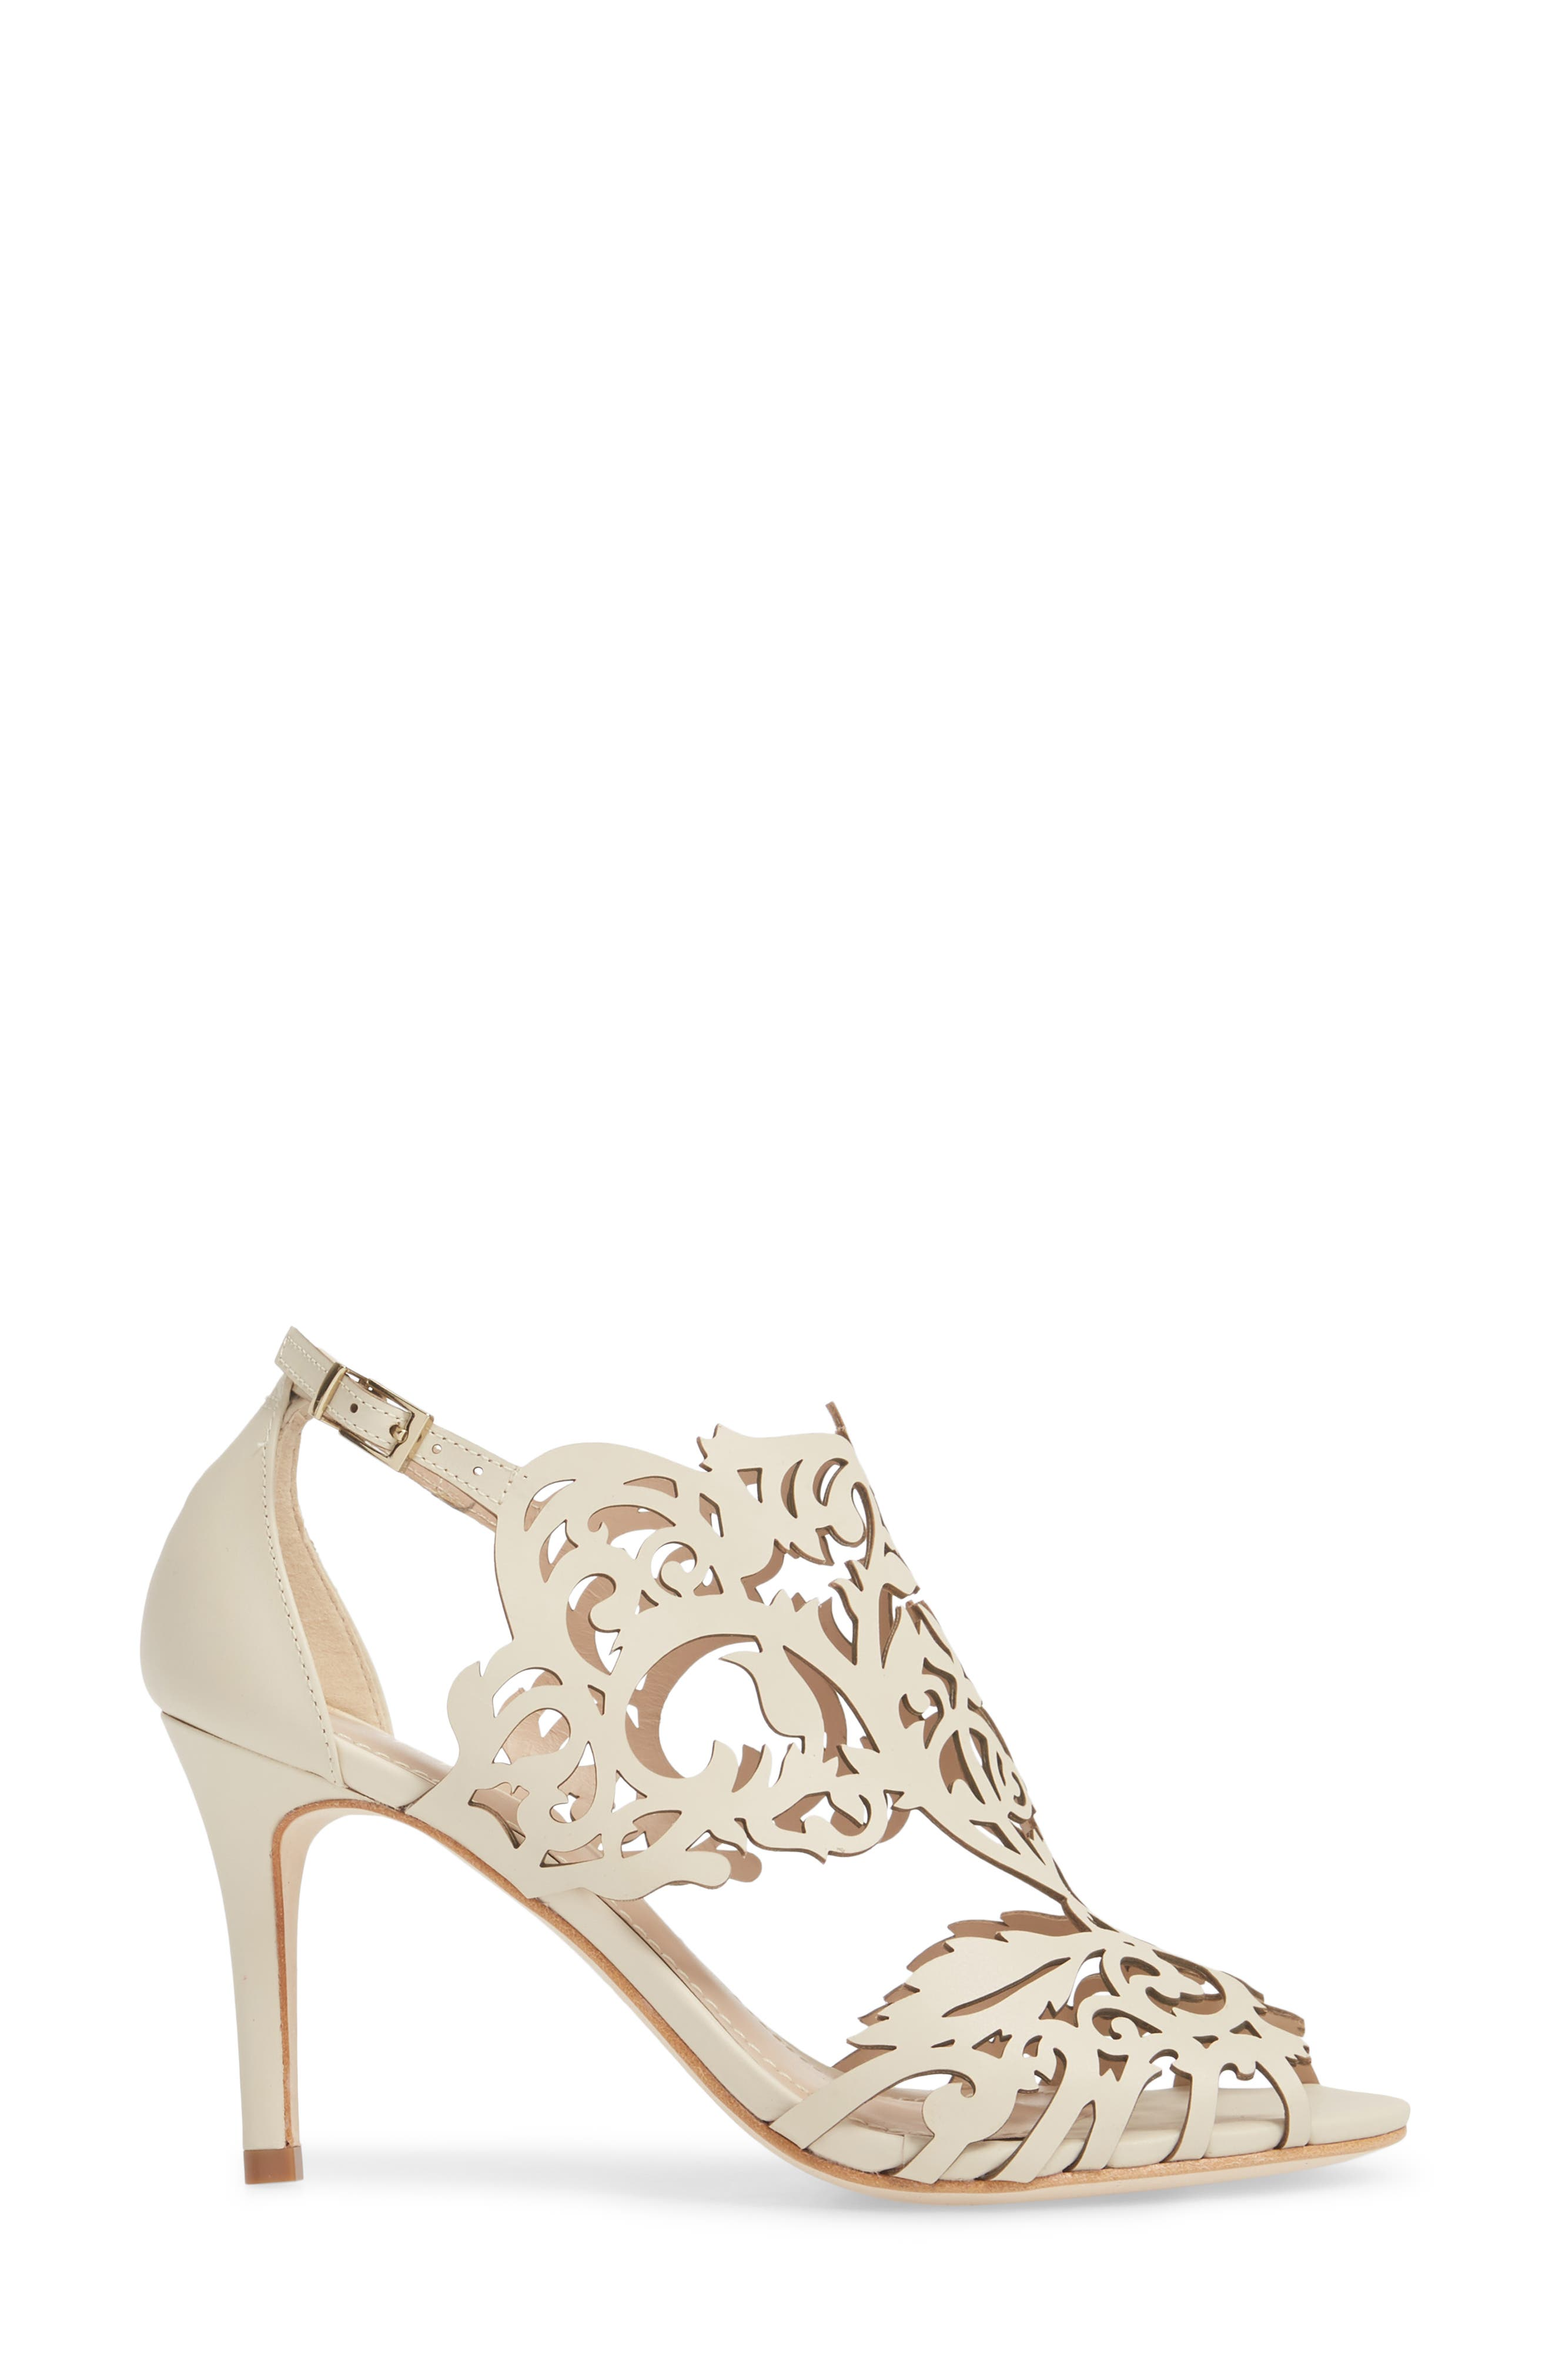 Marcela 3 Laser Cutout Sandal,                             Alternate thumbnail 3, color,                             Ivory Leather